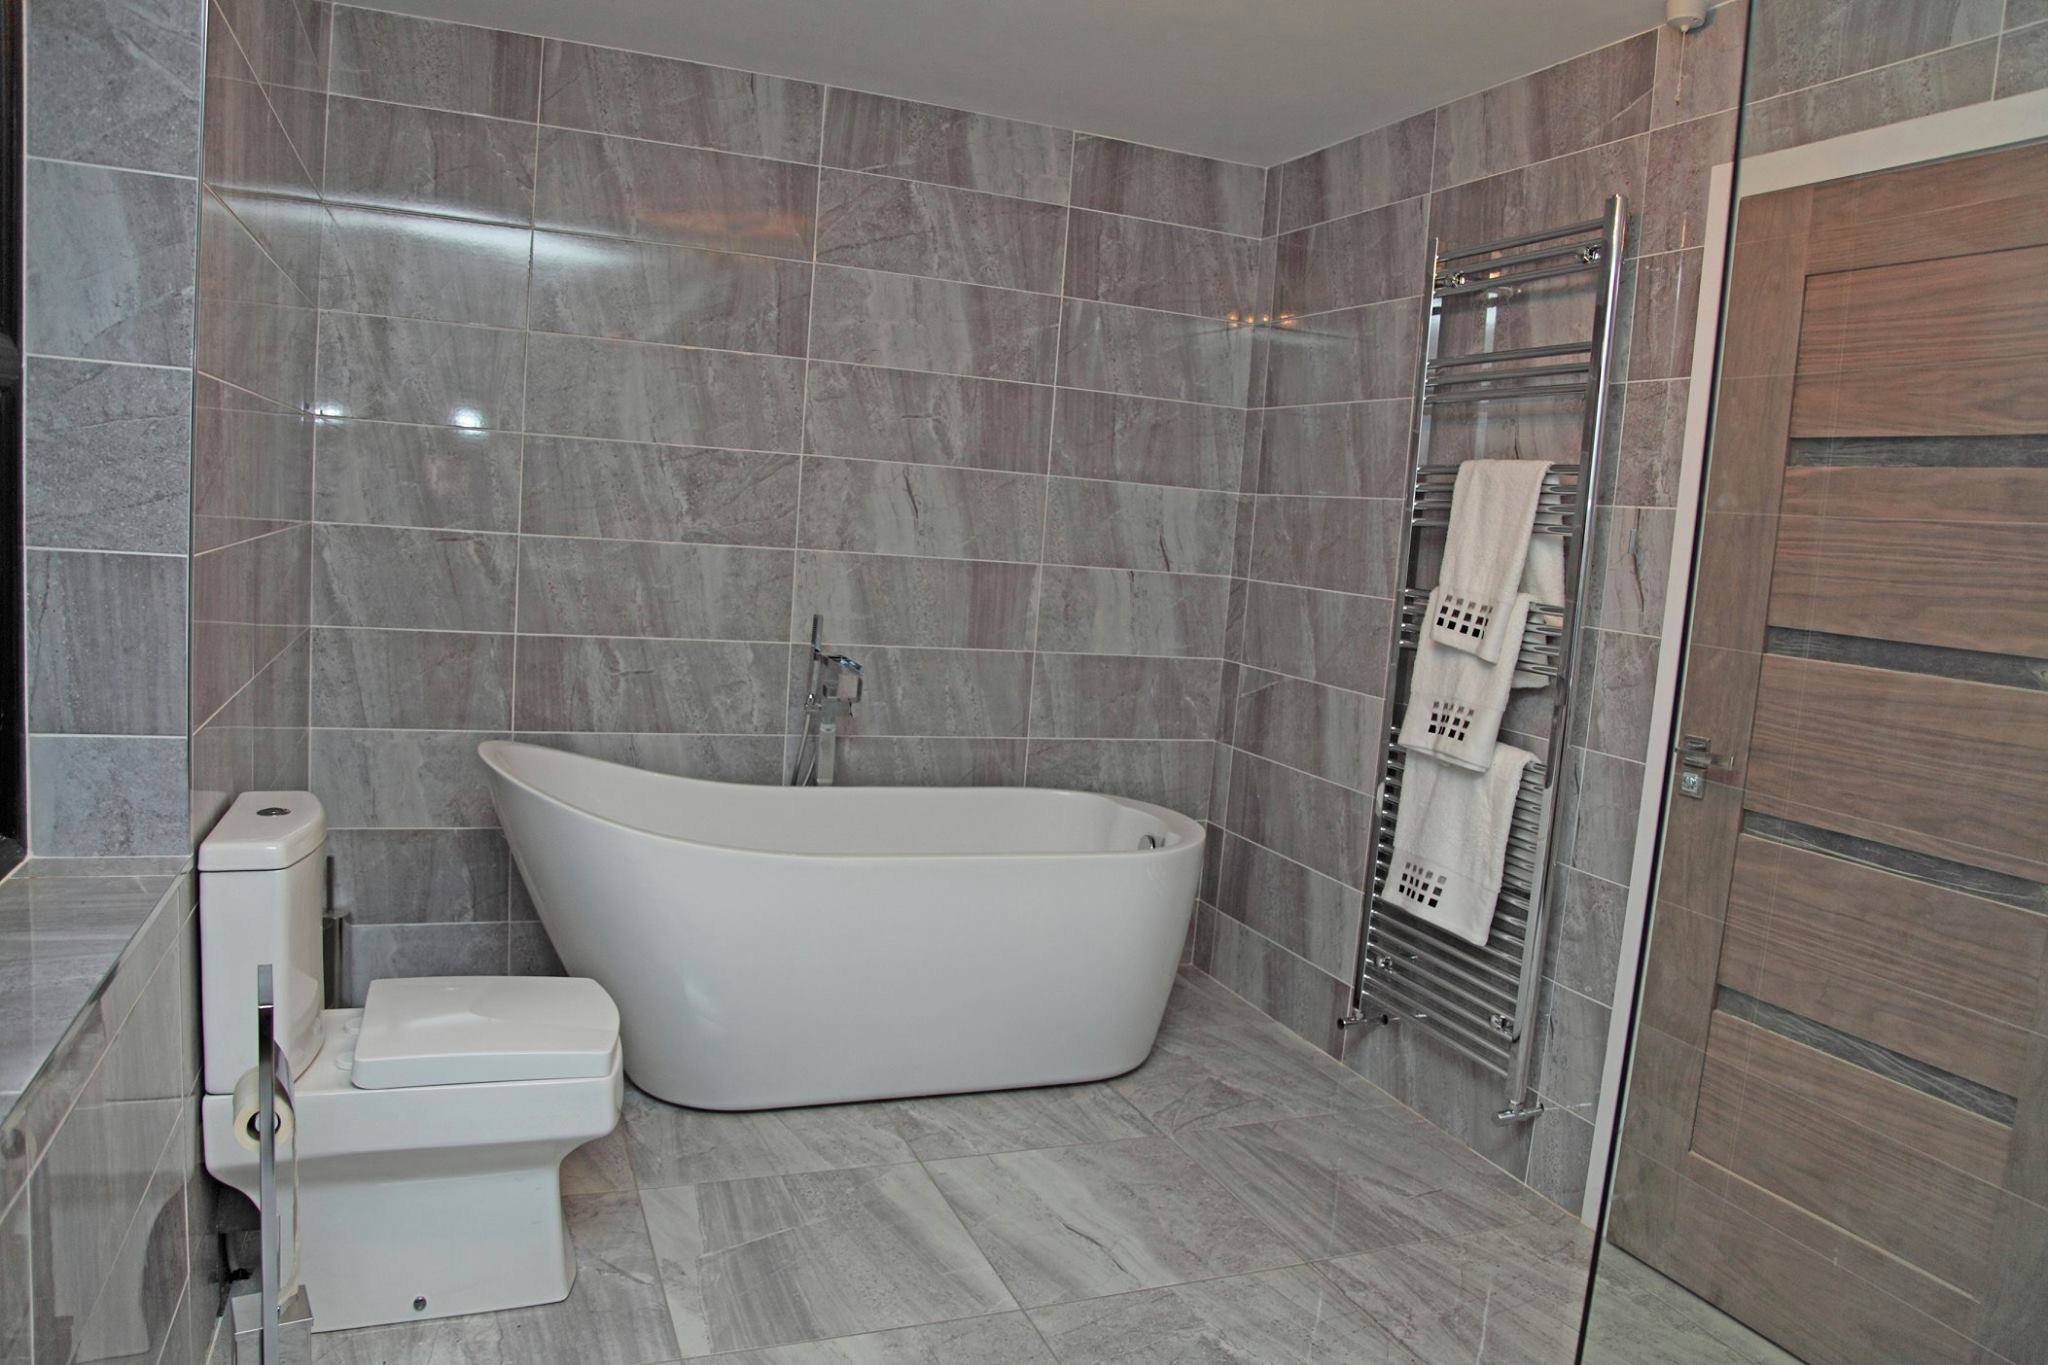 Book of bathroom tiles uk sale in germany by mia for Bathroom design blackpool